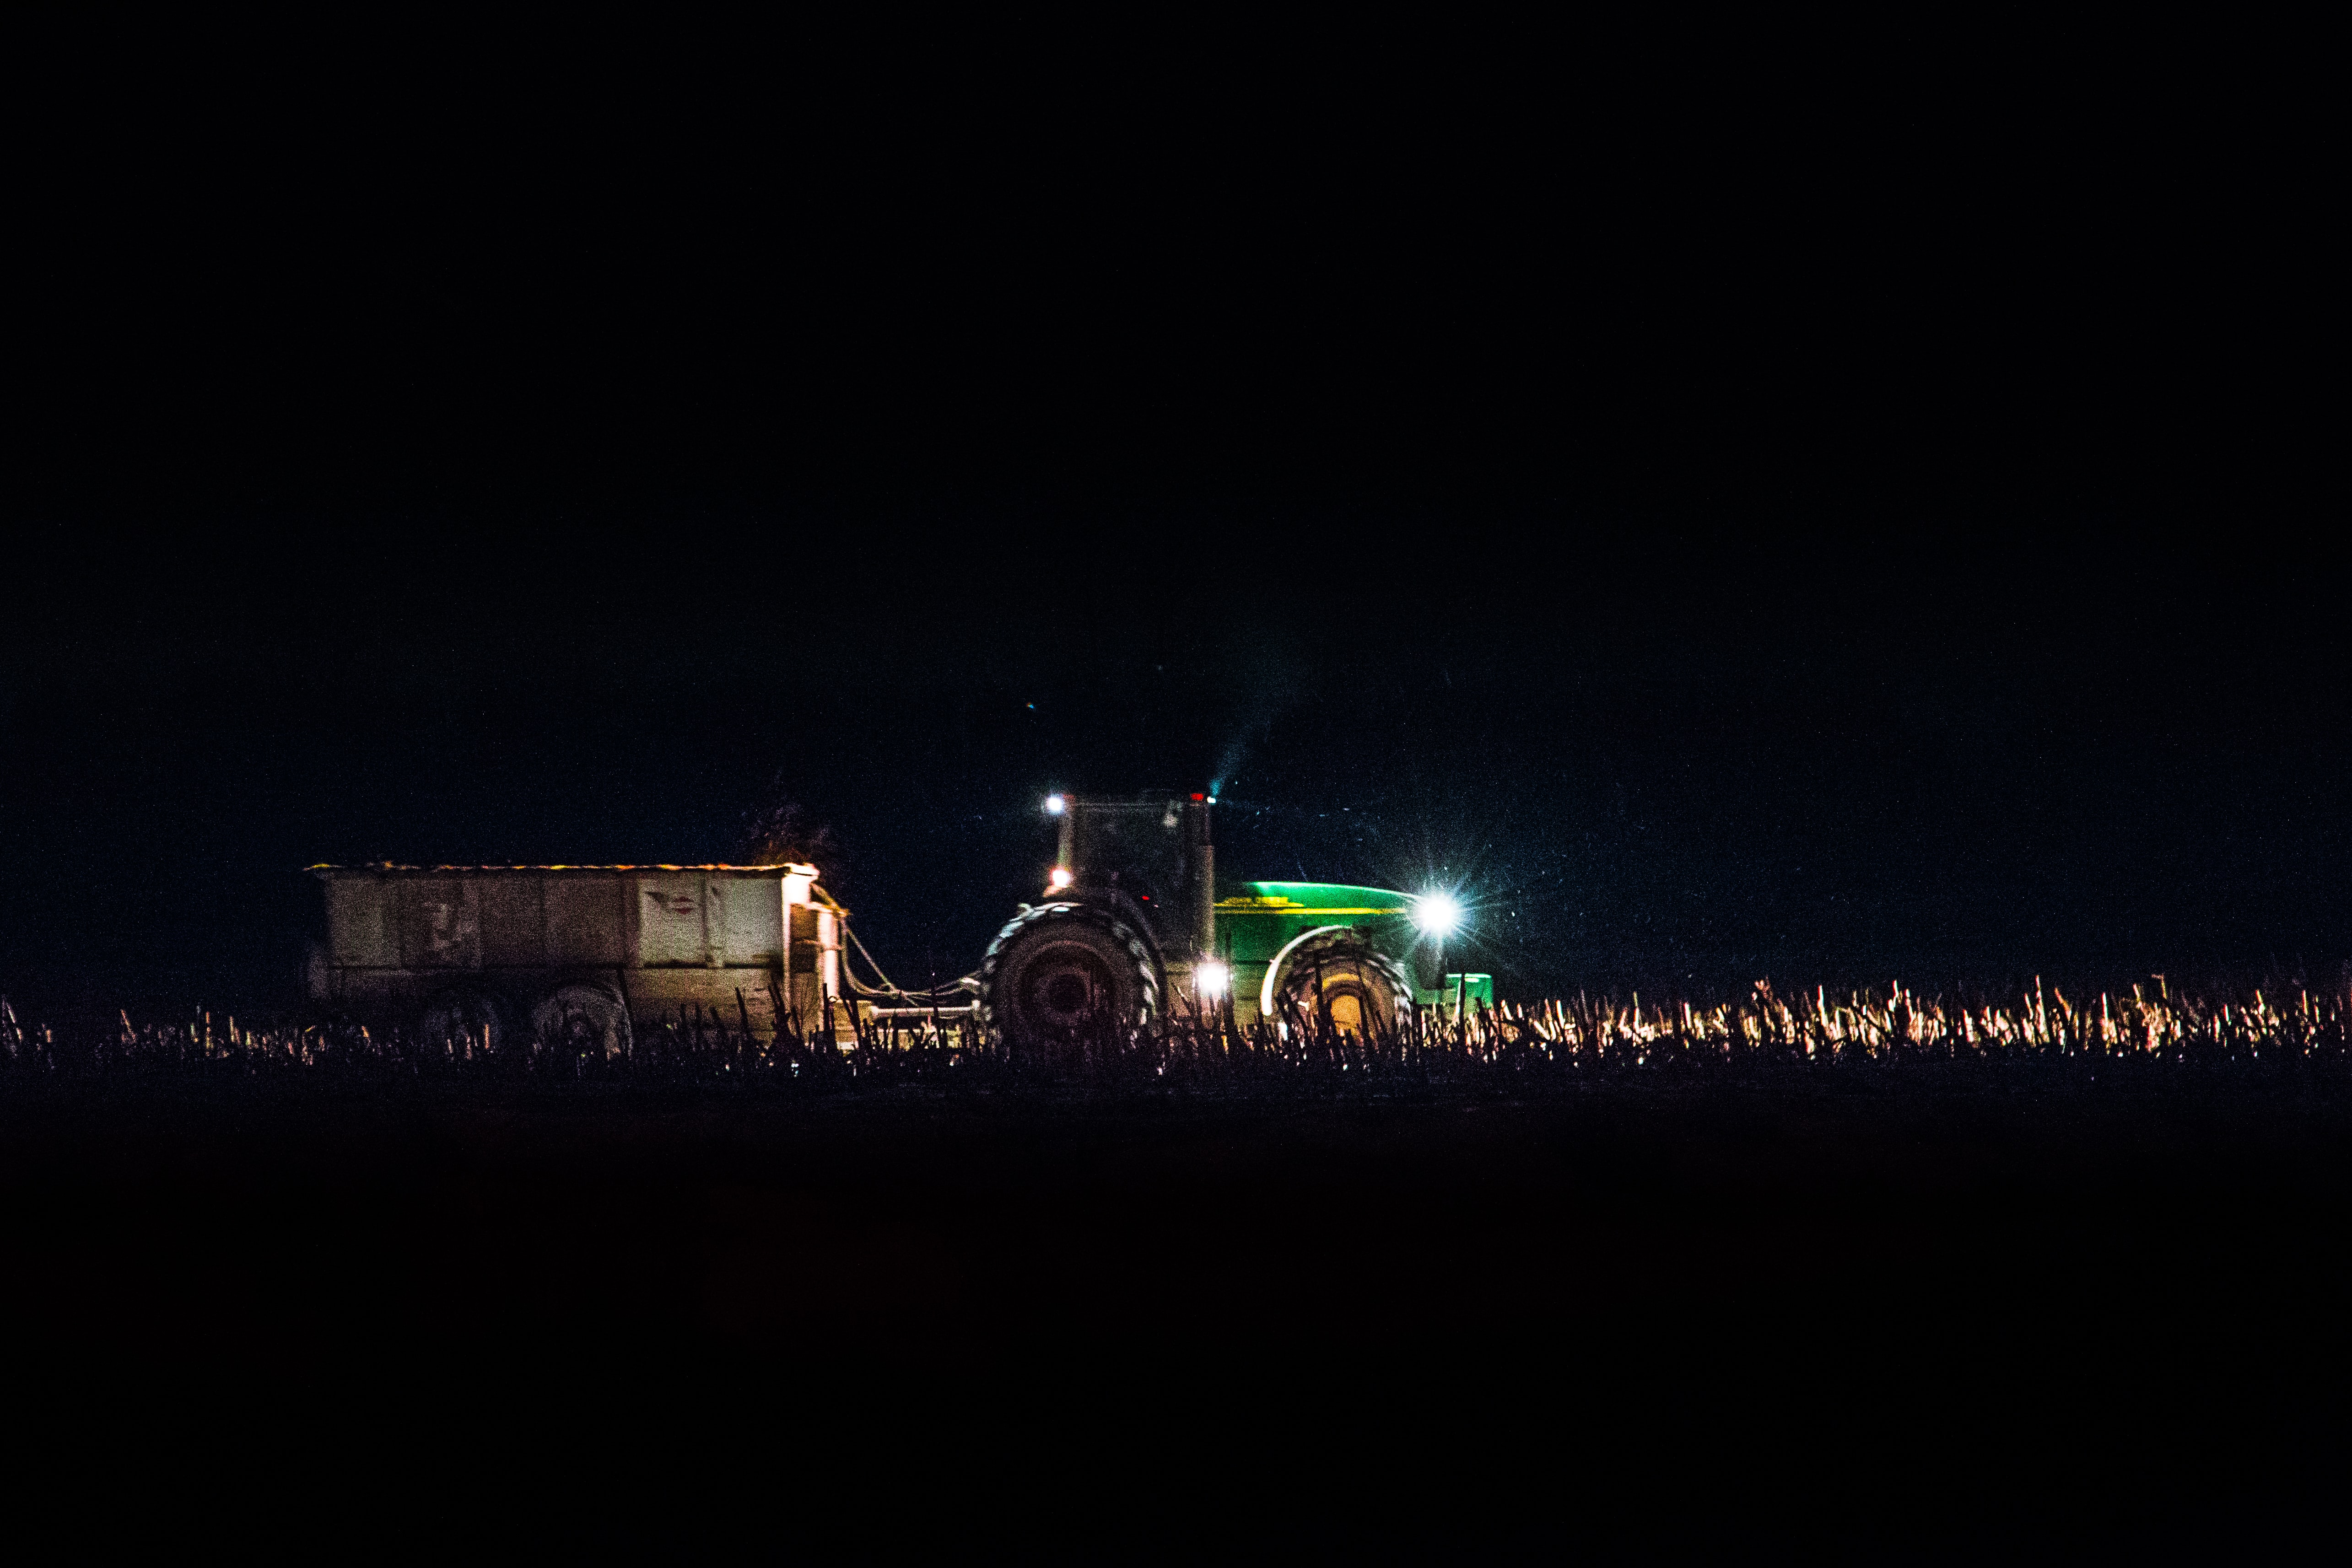 green freight truck on land during night